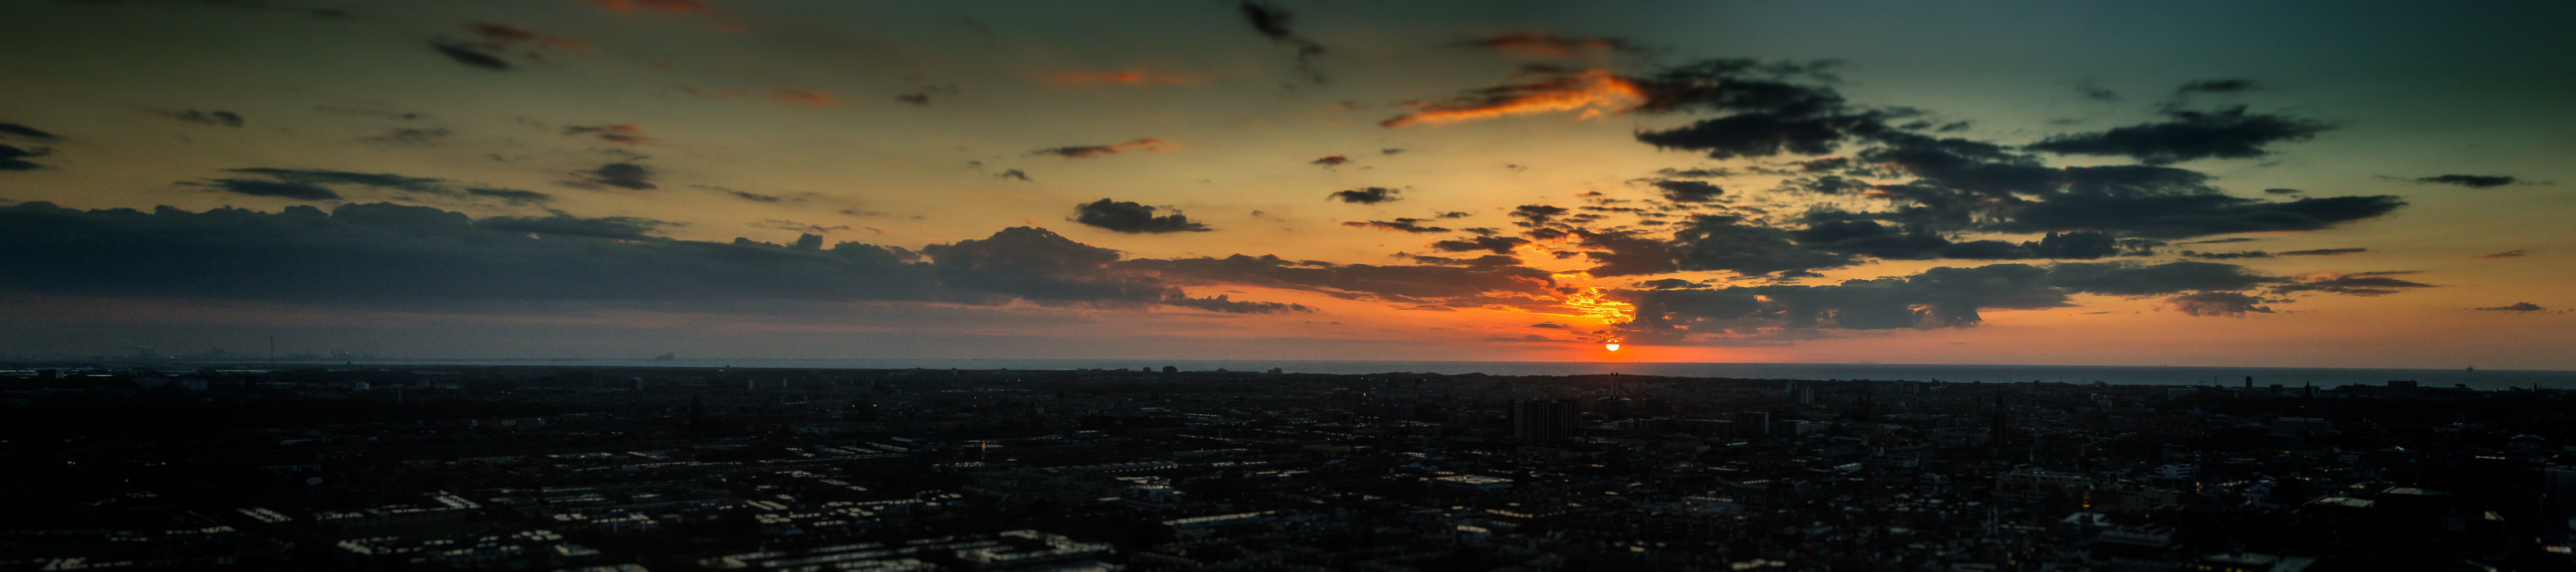 The Hague Sunset